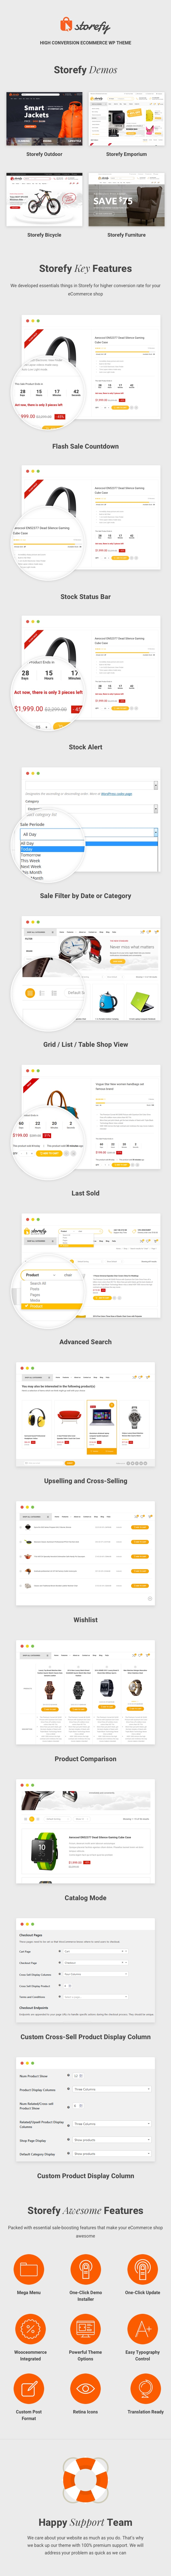 Storefy - High Conversion eCommerce WordPress Theme